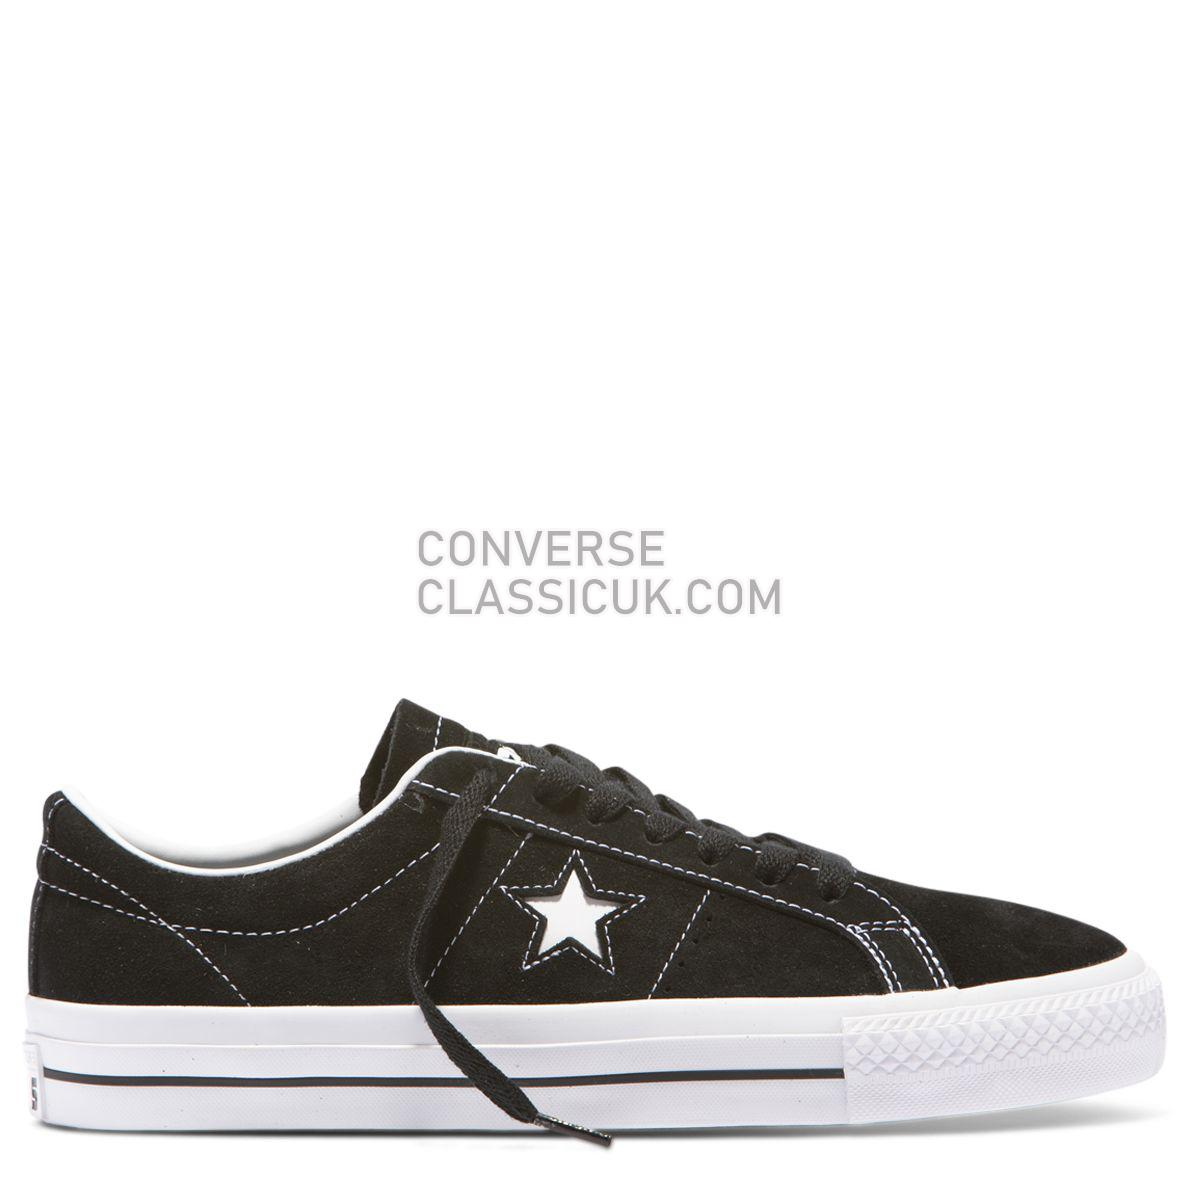 Converse CONS One Star Pro Suede Low Top Black Mens 159579 Black/White/White Shoes